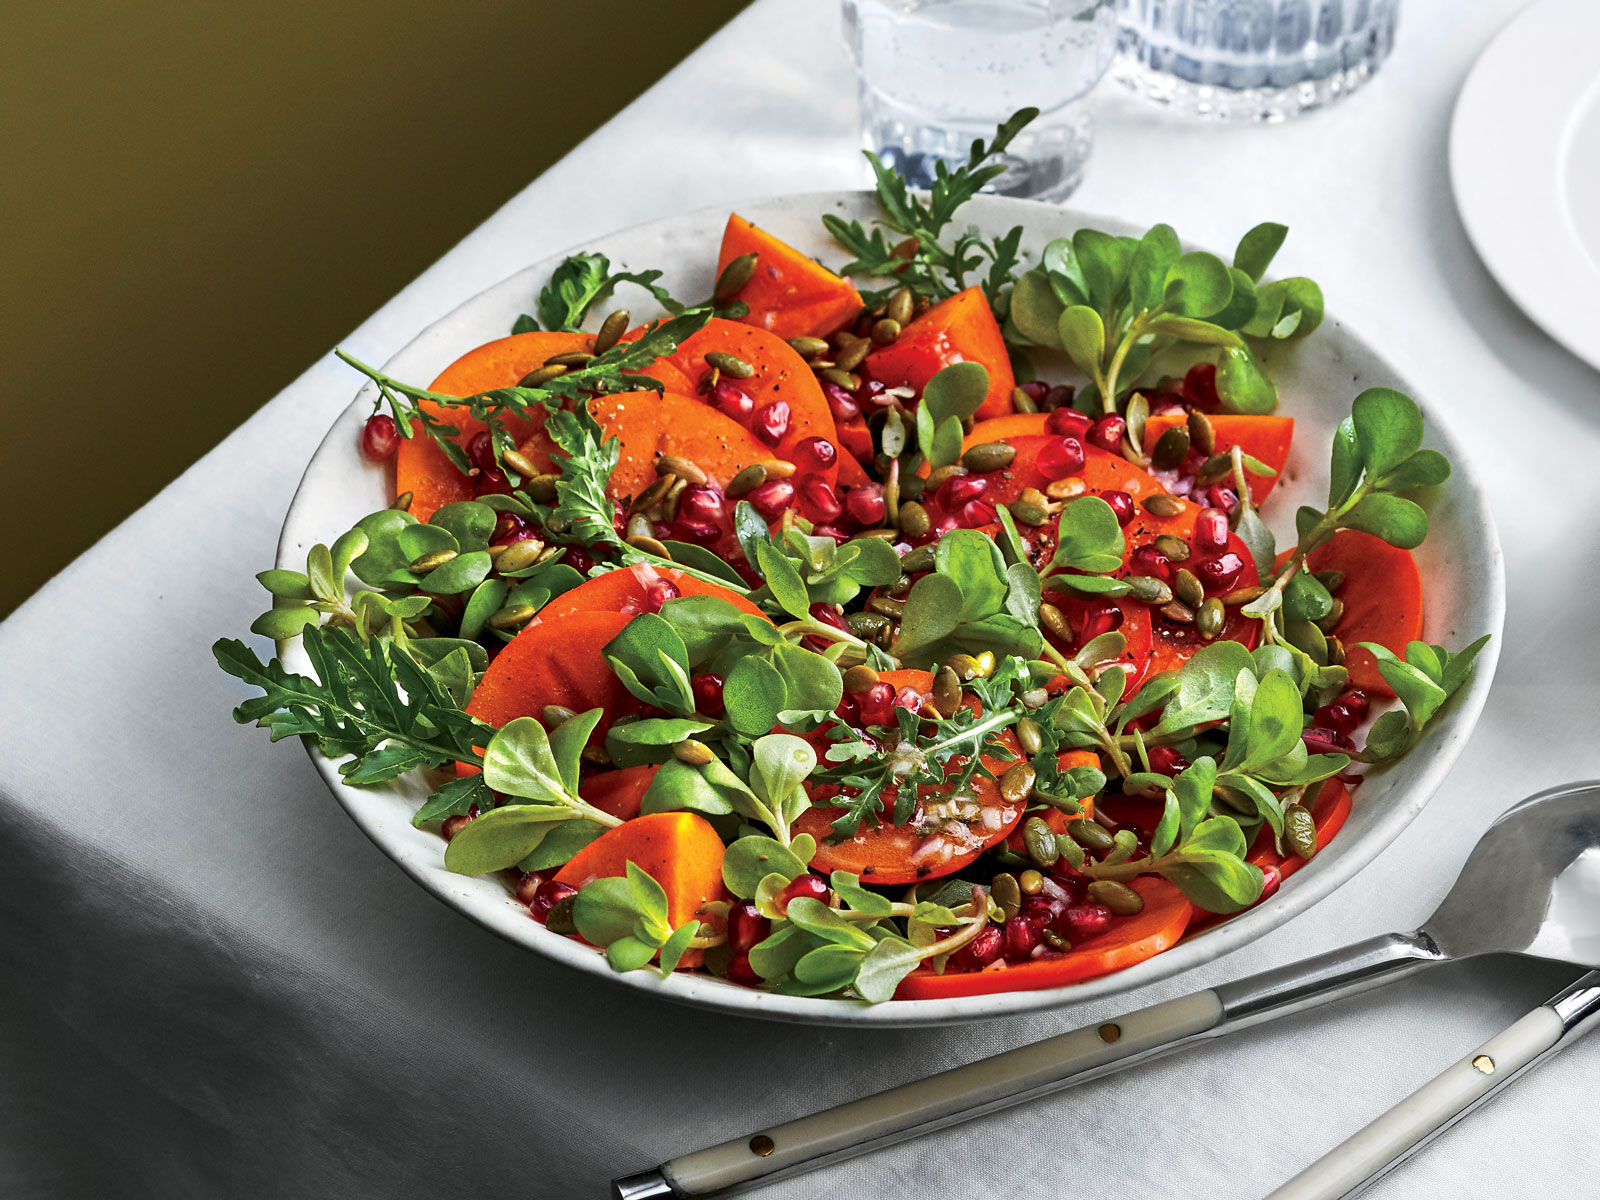 Persimmons, Pomegranate, and Purslane with Pepitas